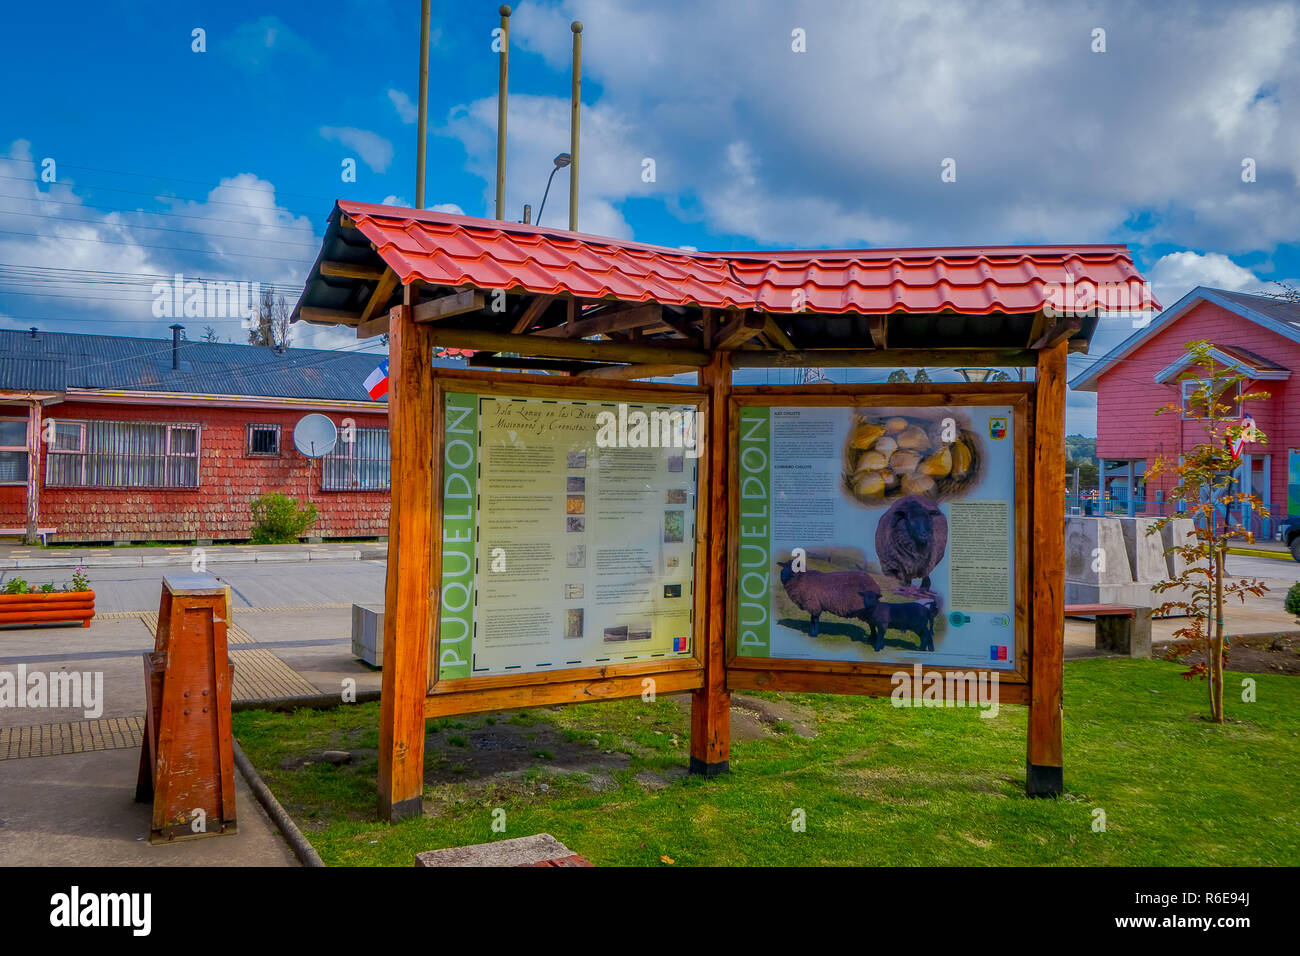 CHILOE, CHILE - SEPTEMBER, 27, 2018: Outdoor informative sign on Lemuy Island - Stock Image